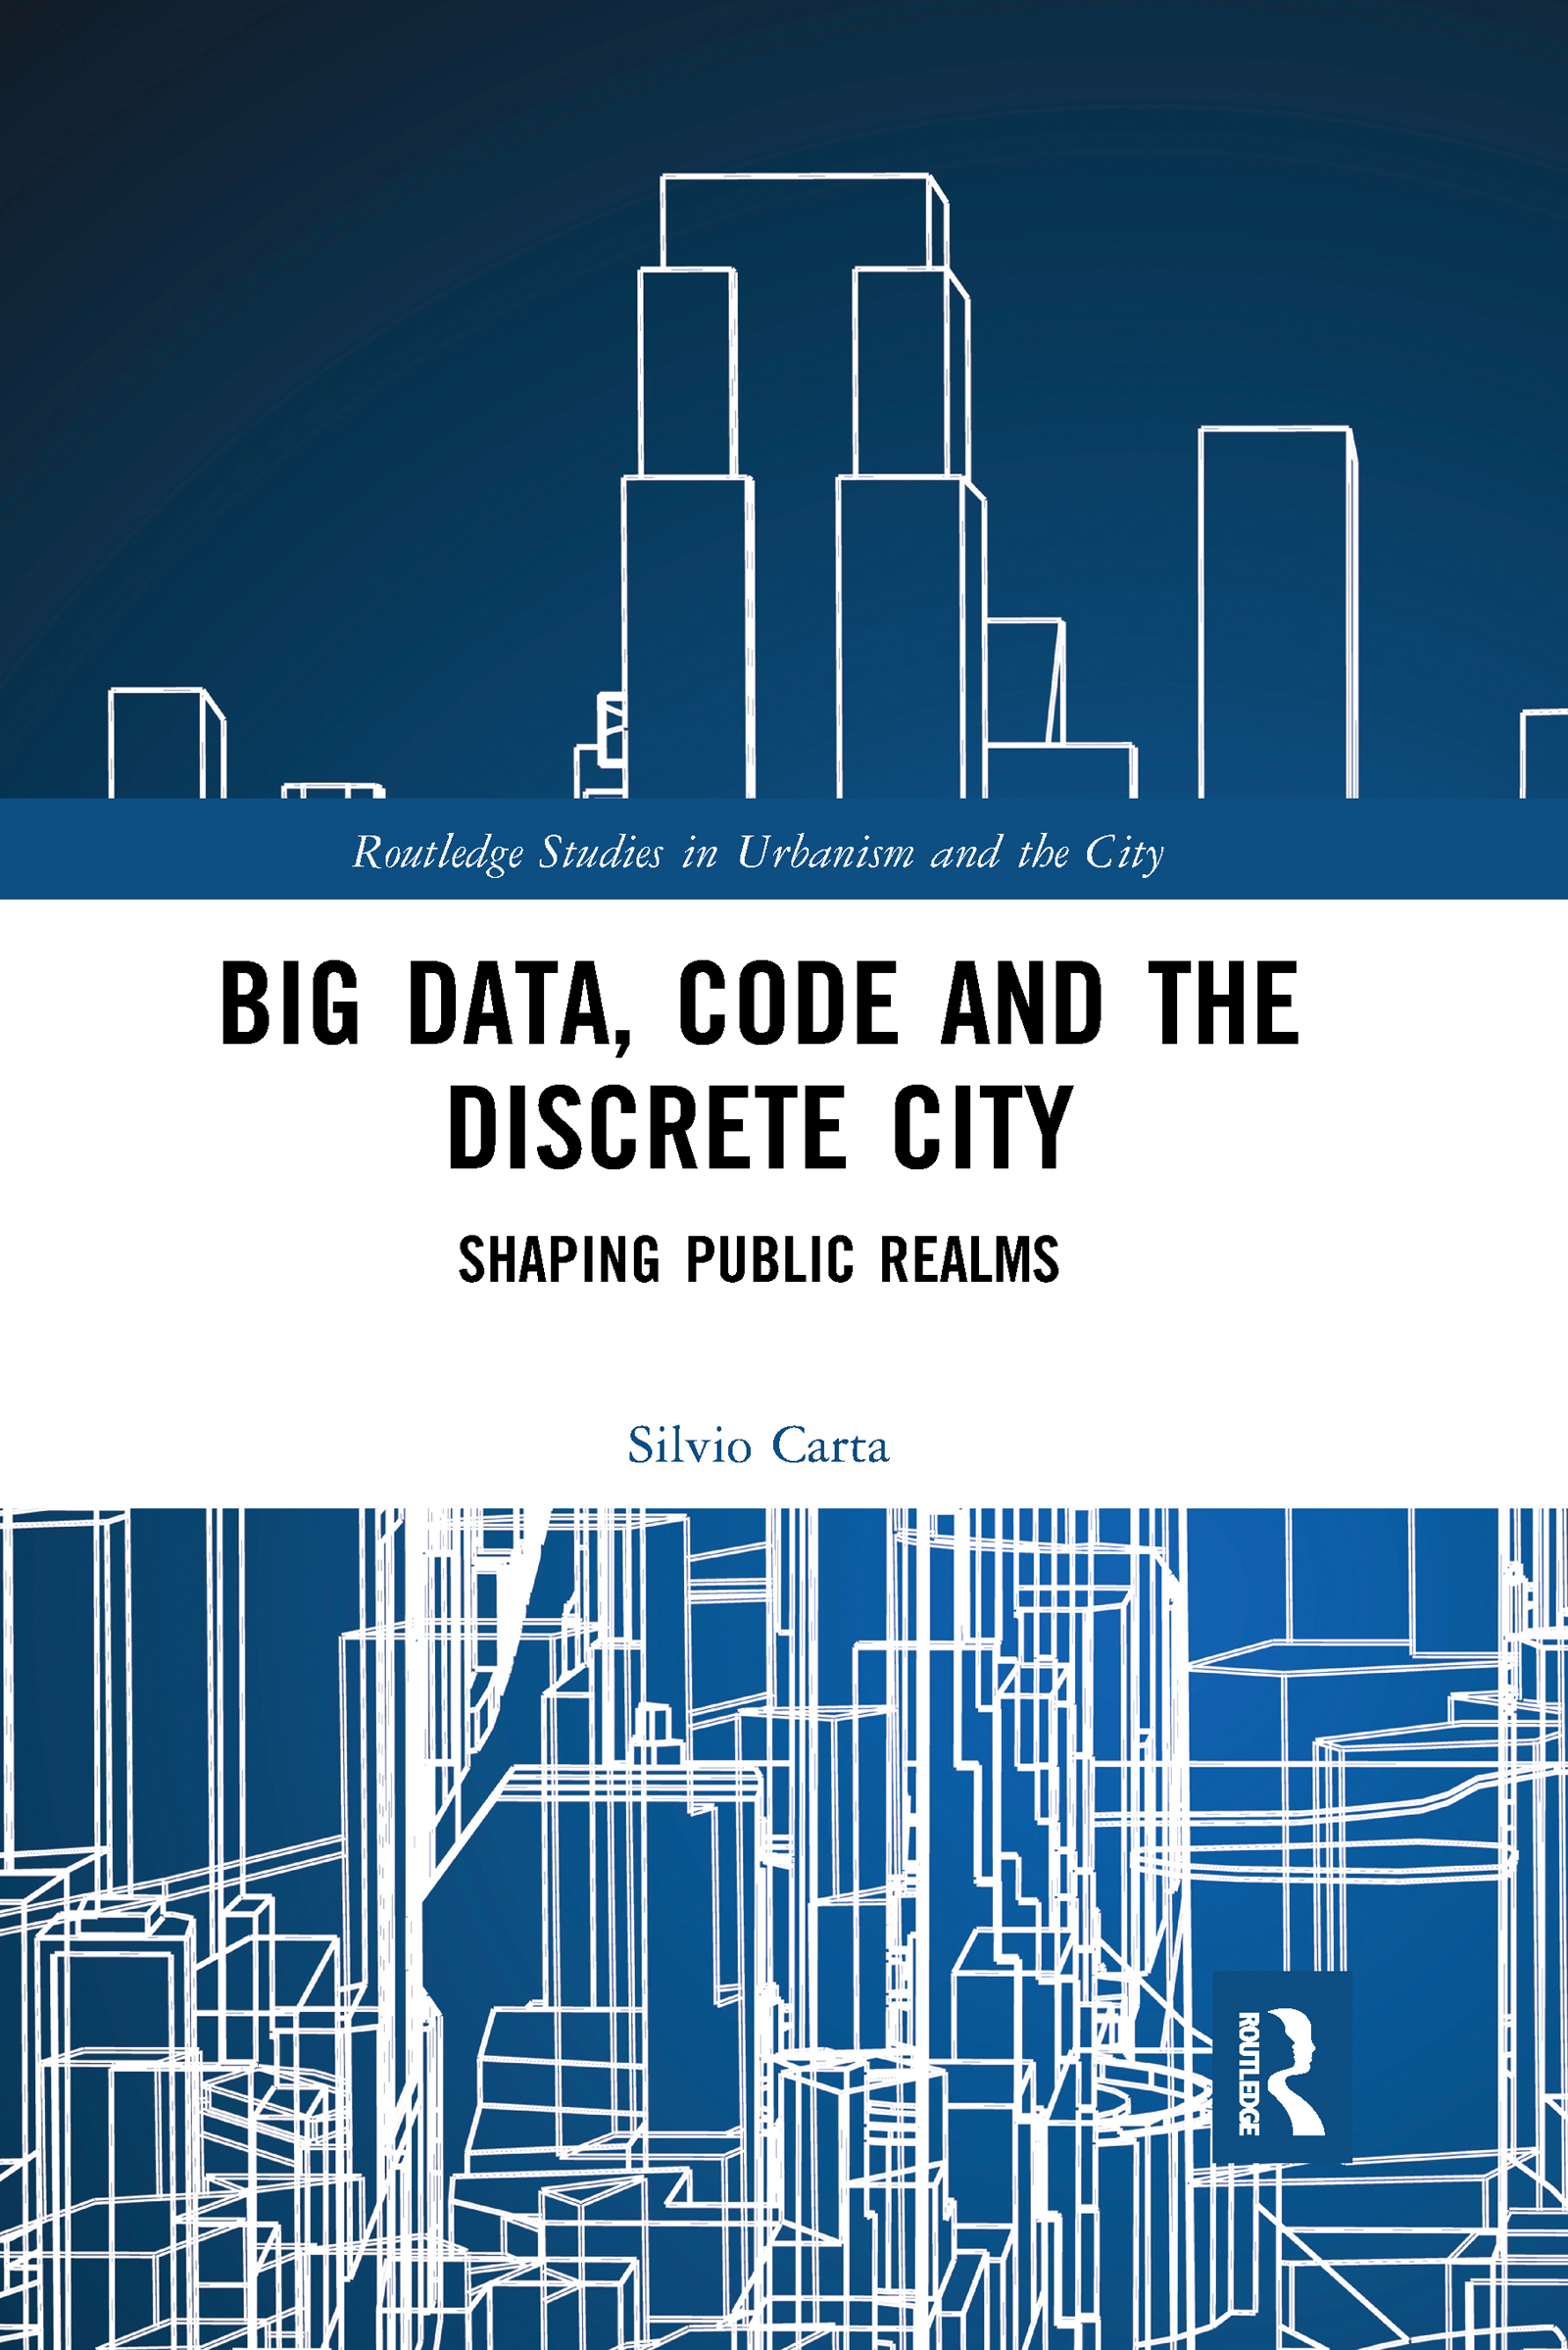 Big Data, Code and the Discrete City